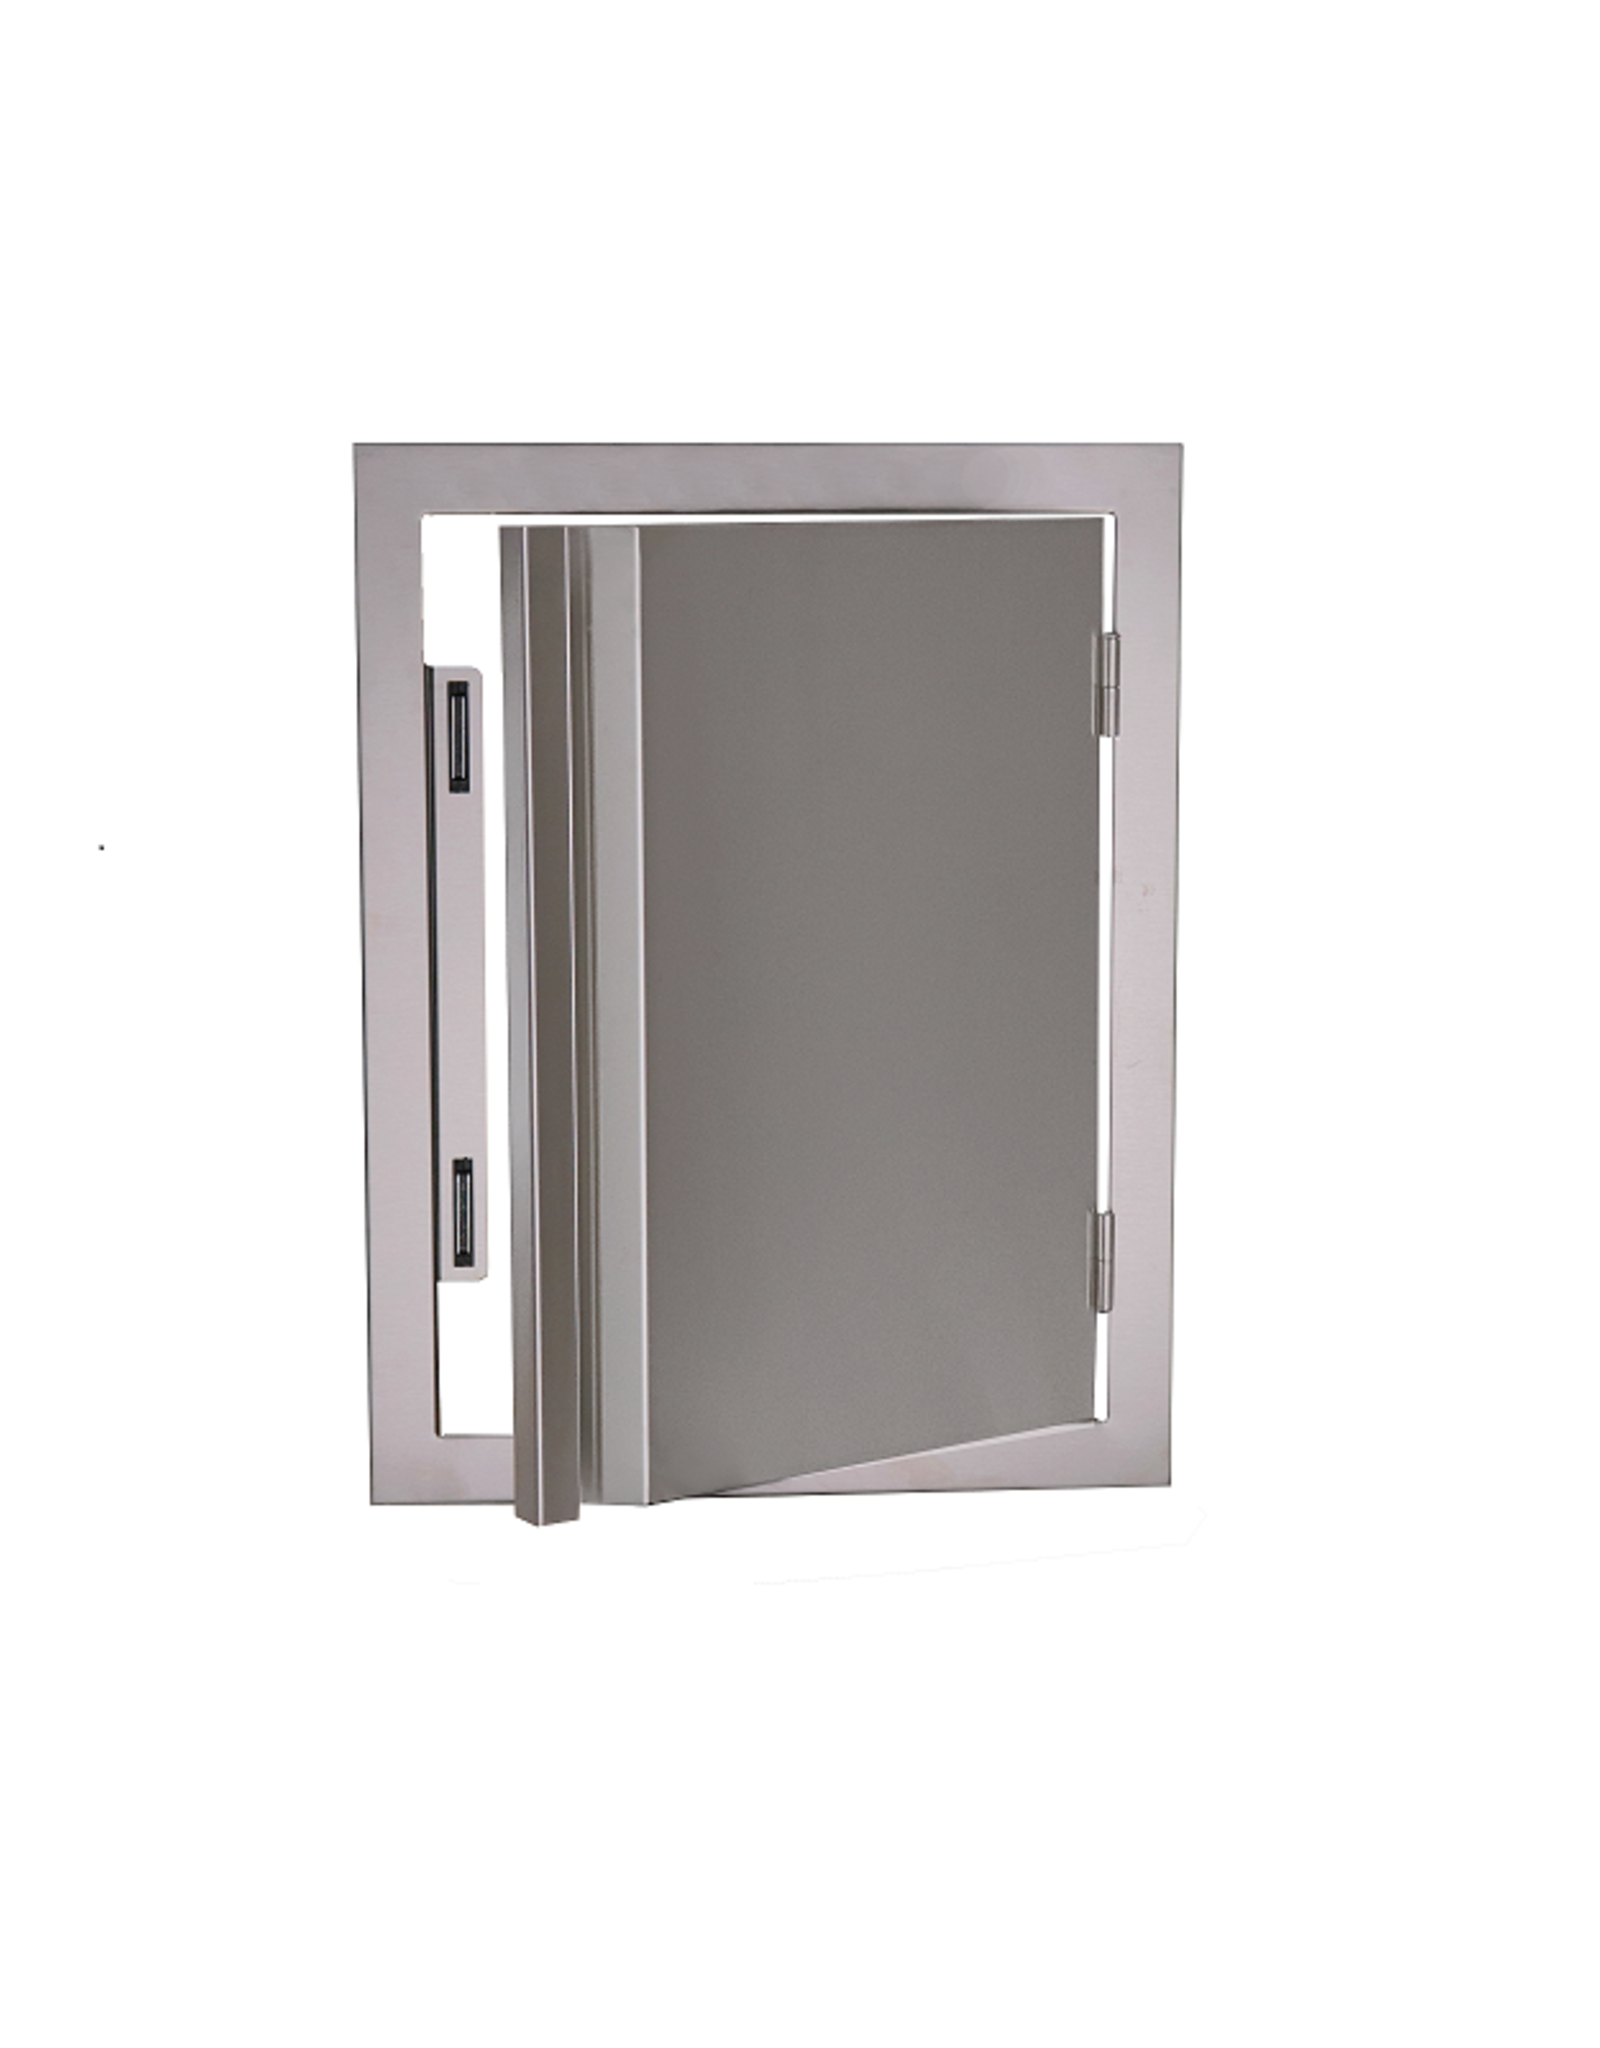 Renaissance Cooking Systems Renaissance Cooking Systems The Valiant Series Vertical Door - VDV1